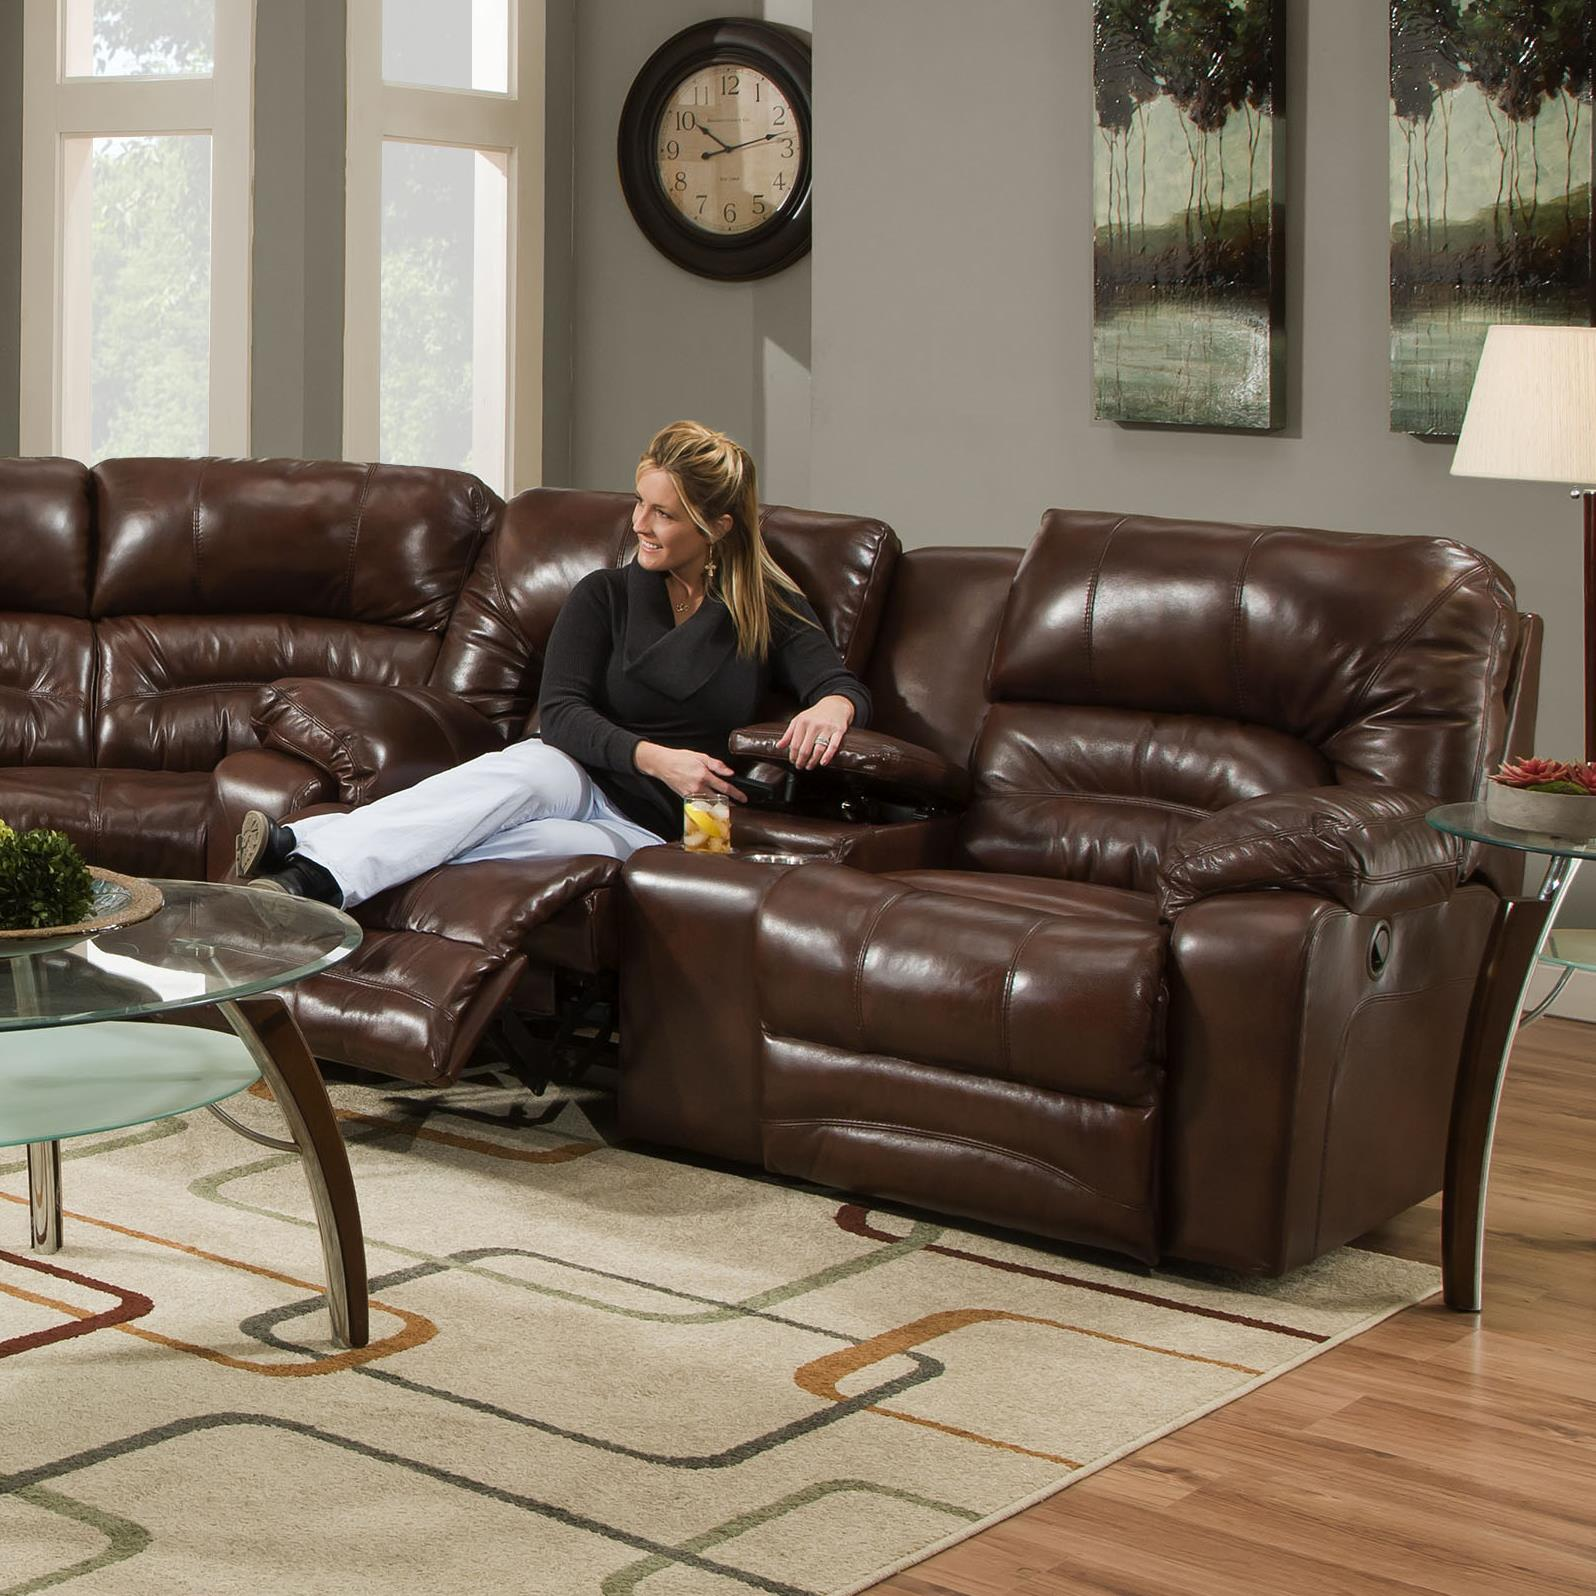 Legacy Power Reclining Console Loveseat by Franklin at Turk Furniture